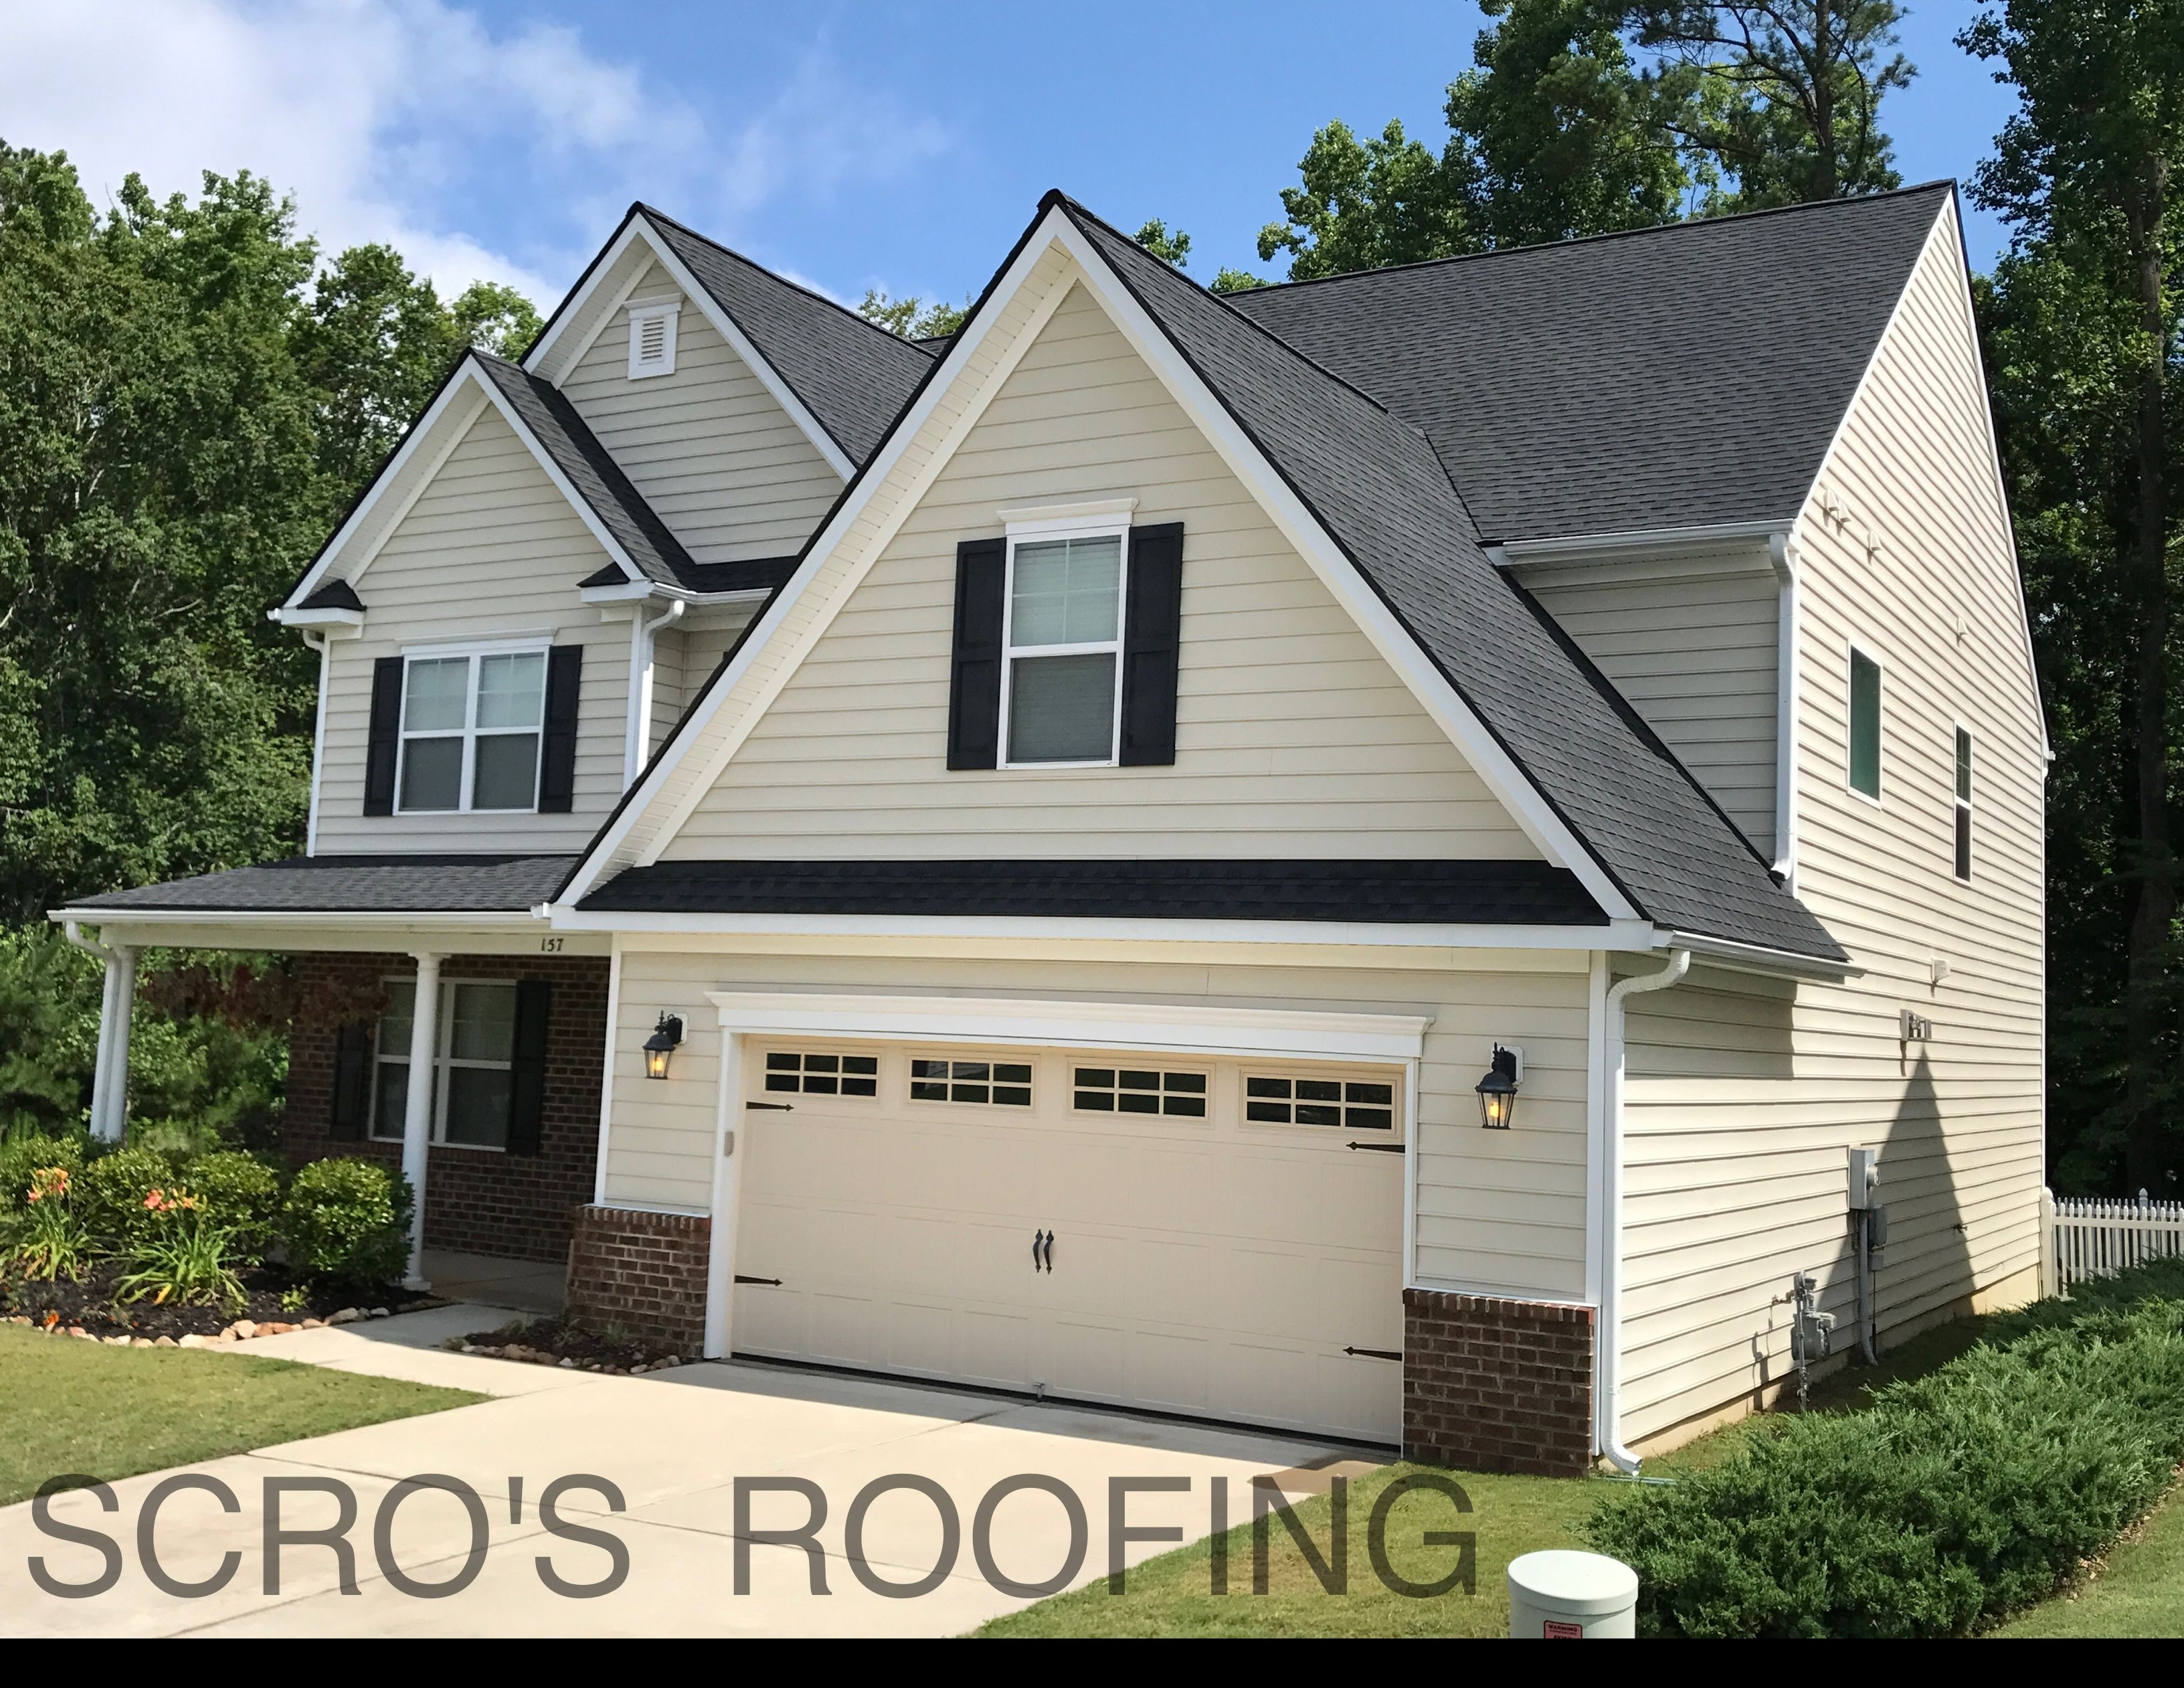 New Roof in Apex NC & Pin by Scrou0027s Roofing on Our Roofs | Pinterest memphite.com